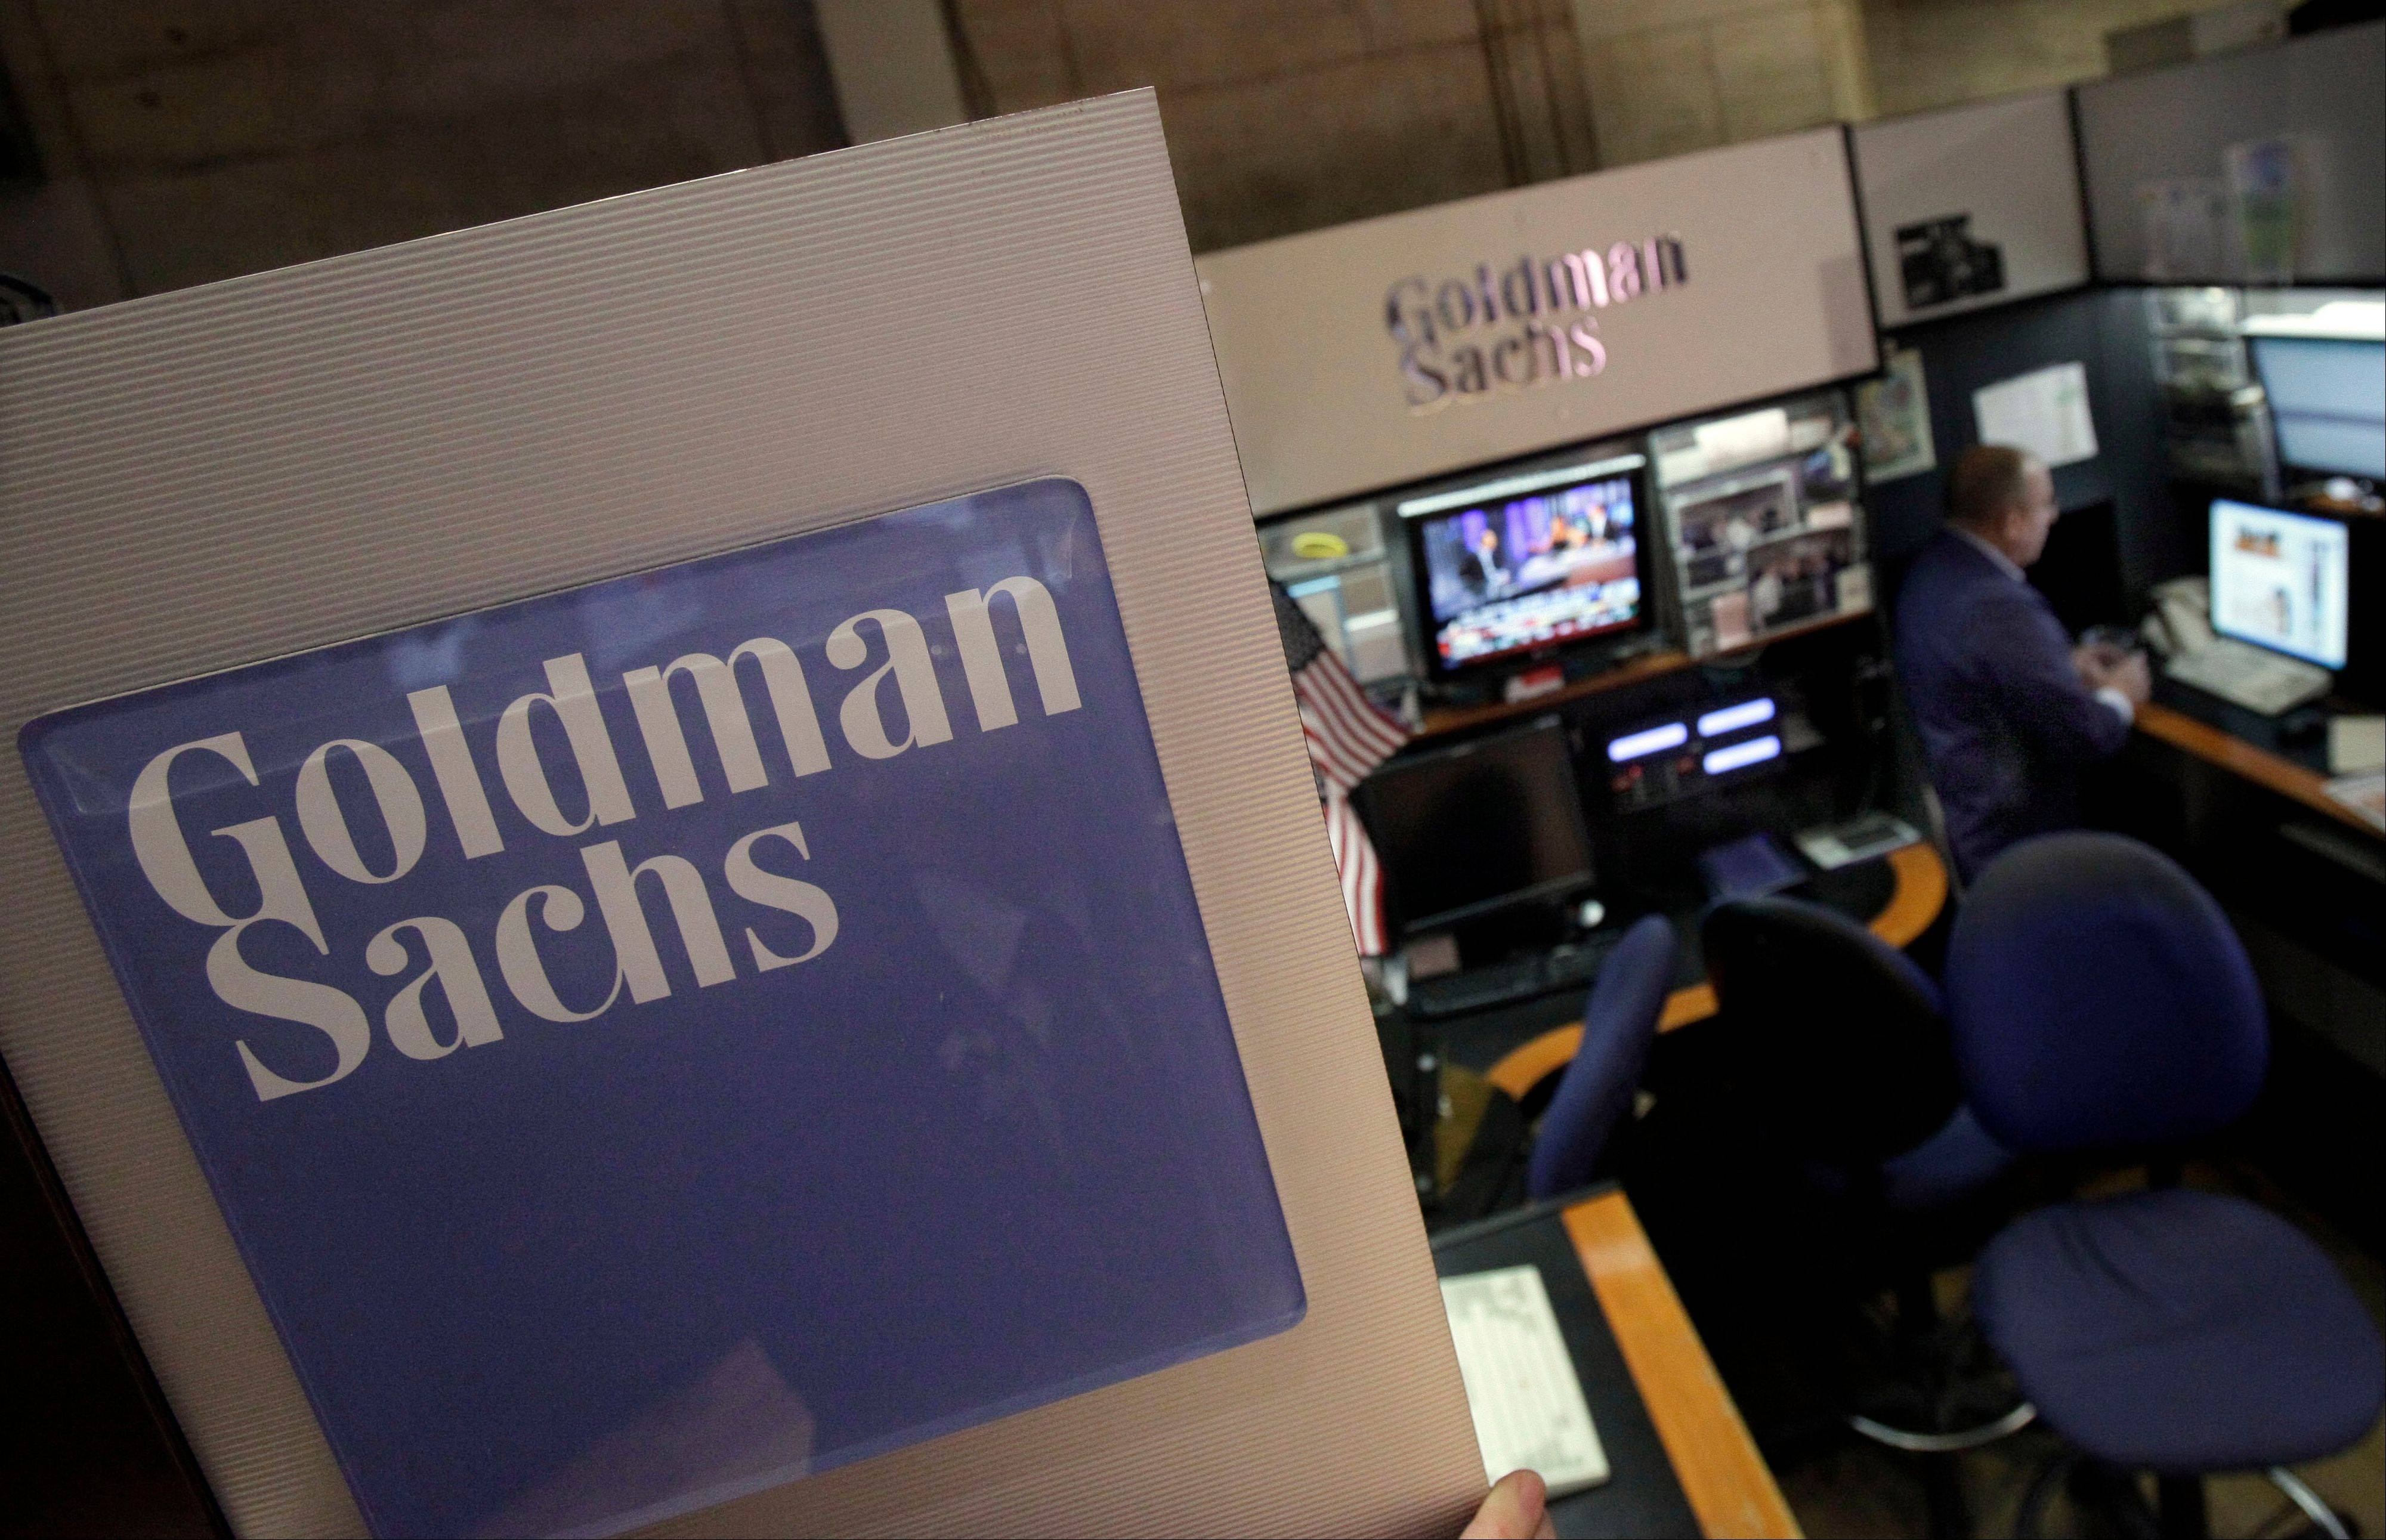 Moody's Investors Service has lowered the credit ratings on some of the world's biggest banks, including Bank of America, JPMorgan Chase and Goldman Sachs, reflecting concern over their exposure to the violent swings in global financial markets.